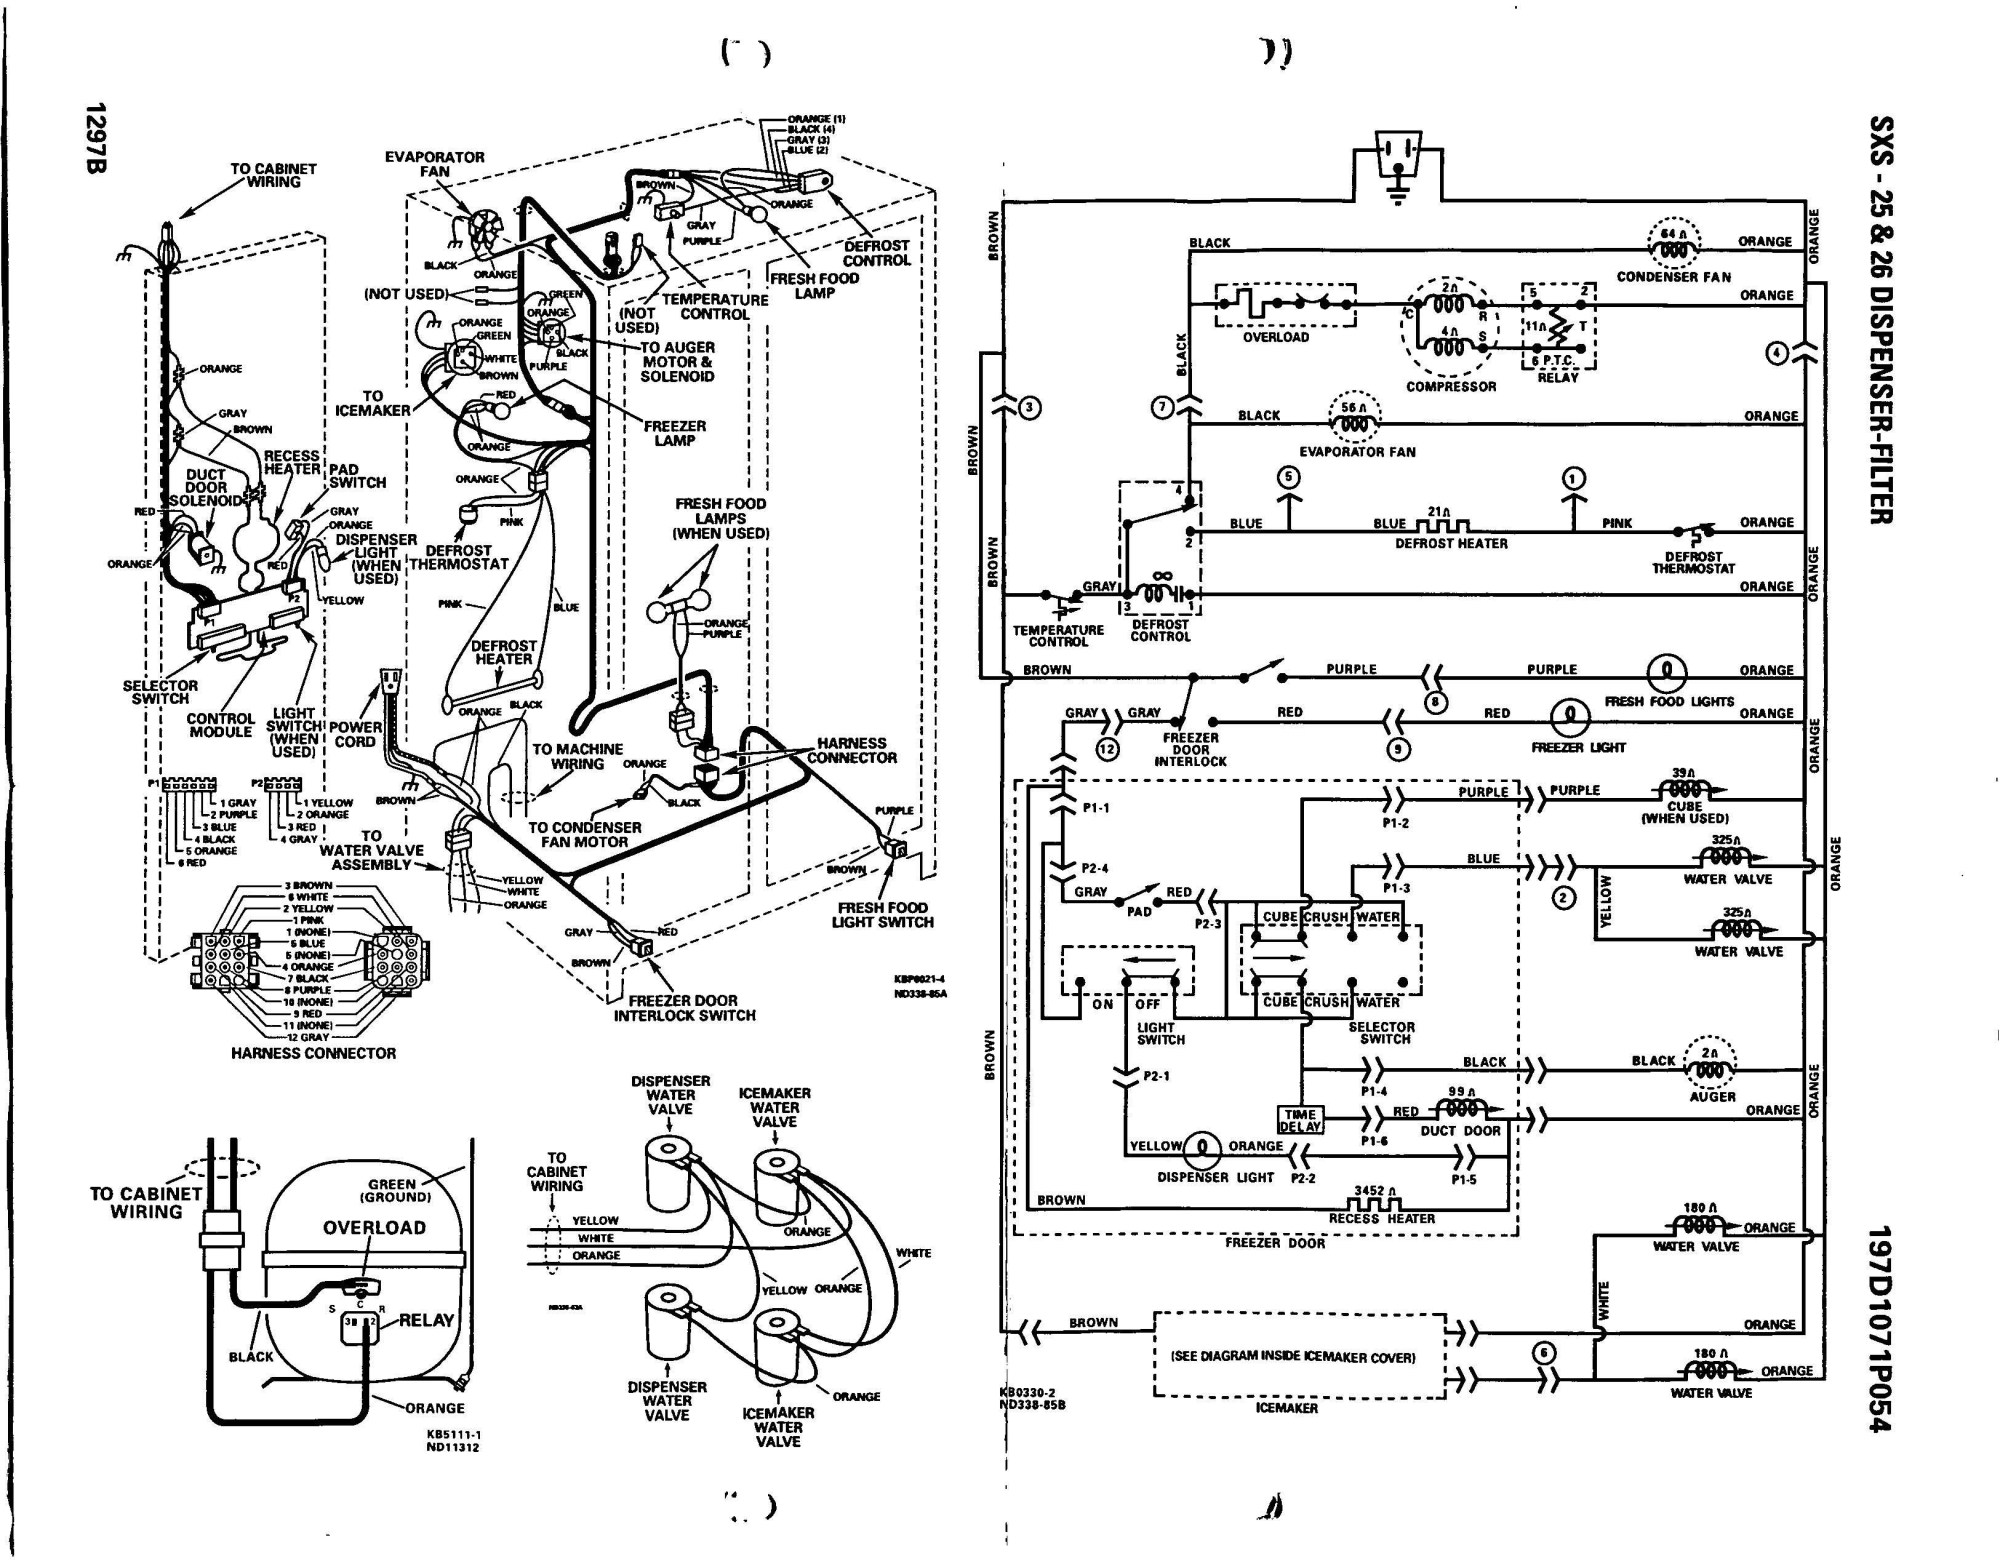 hight resolution of bionaire wiring diagram wiring diagram portal kitchenaid superba wiring diagram kitchenaid wiring diagram